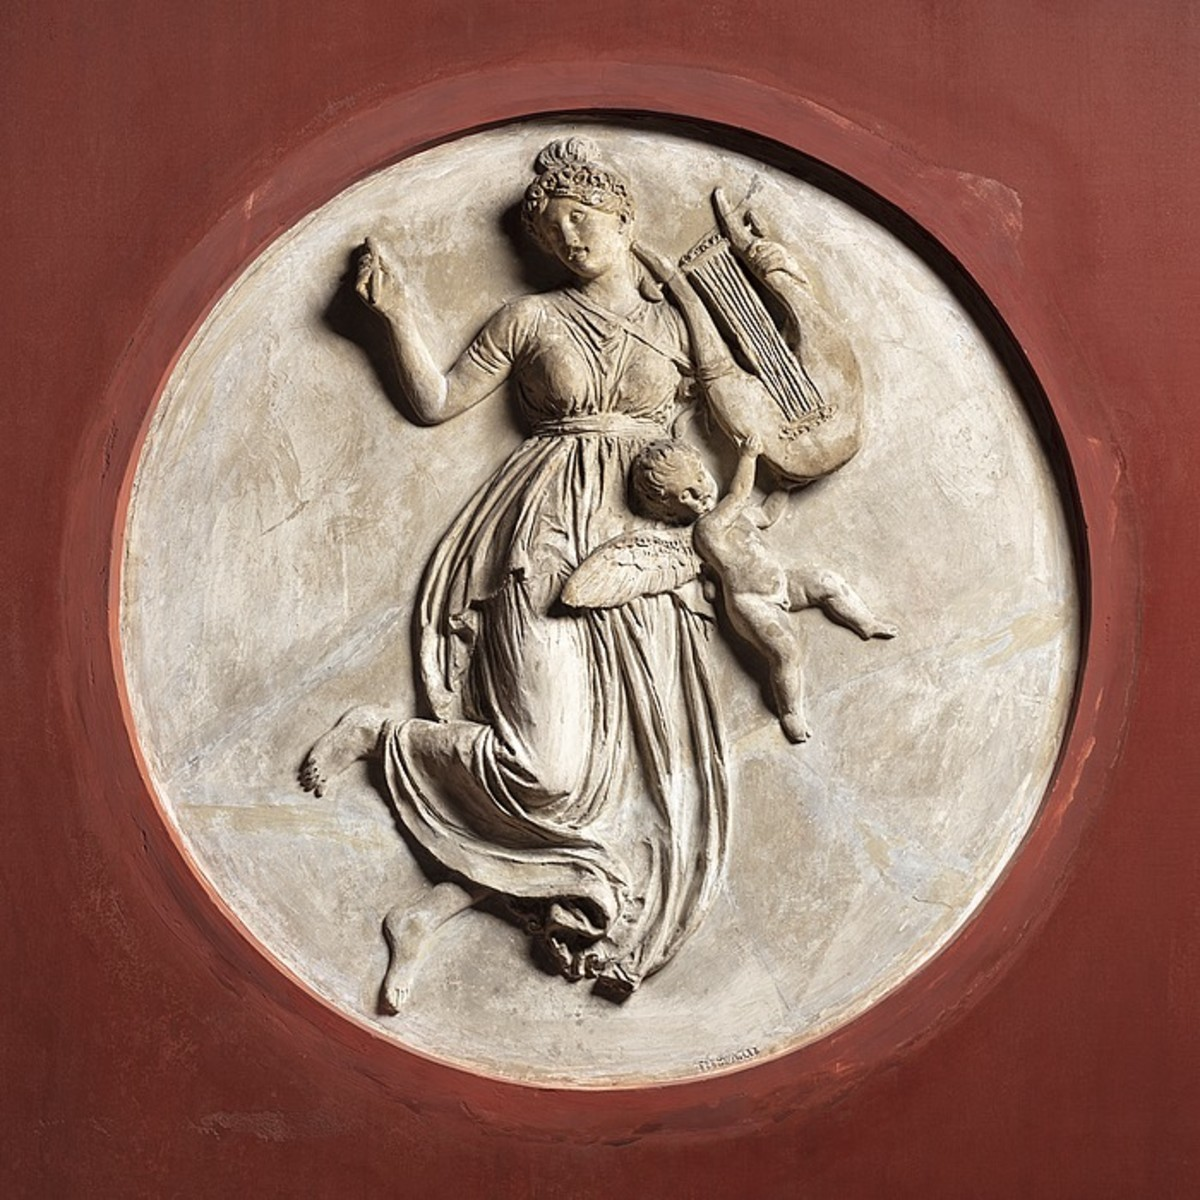 Erato, Muse of Lyric and Love Poetry.